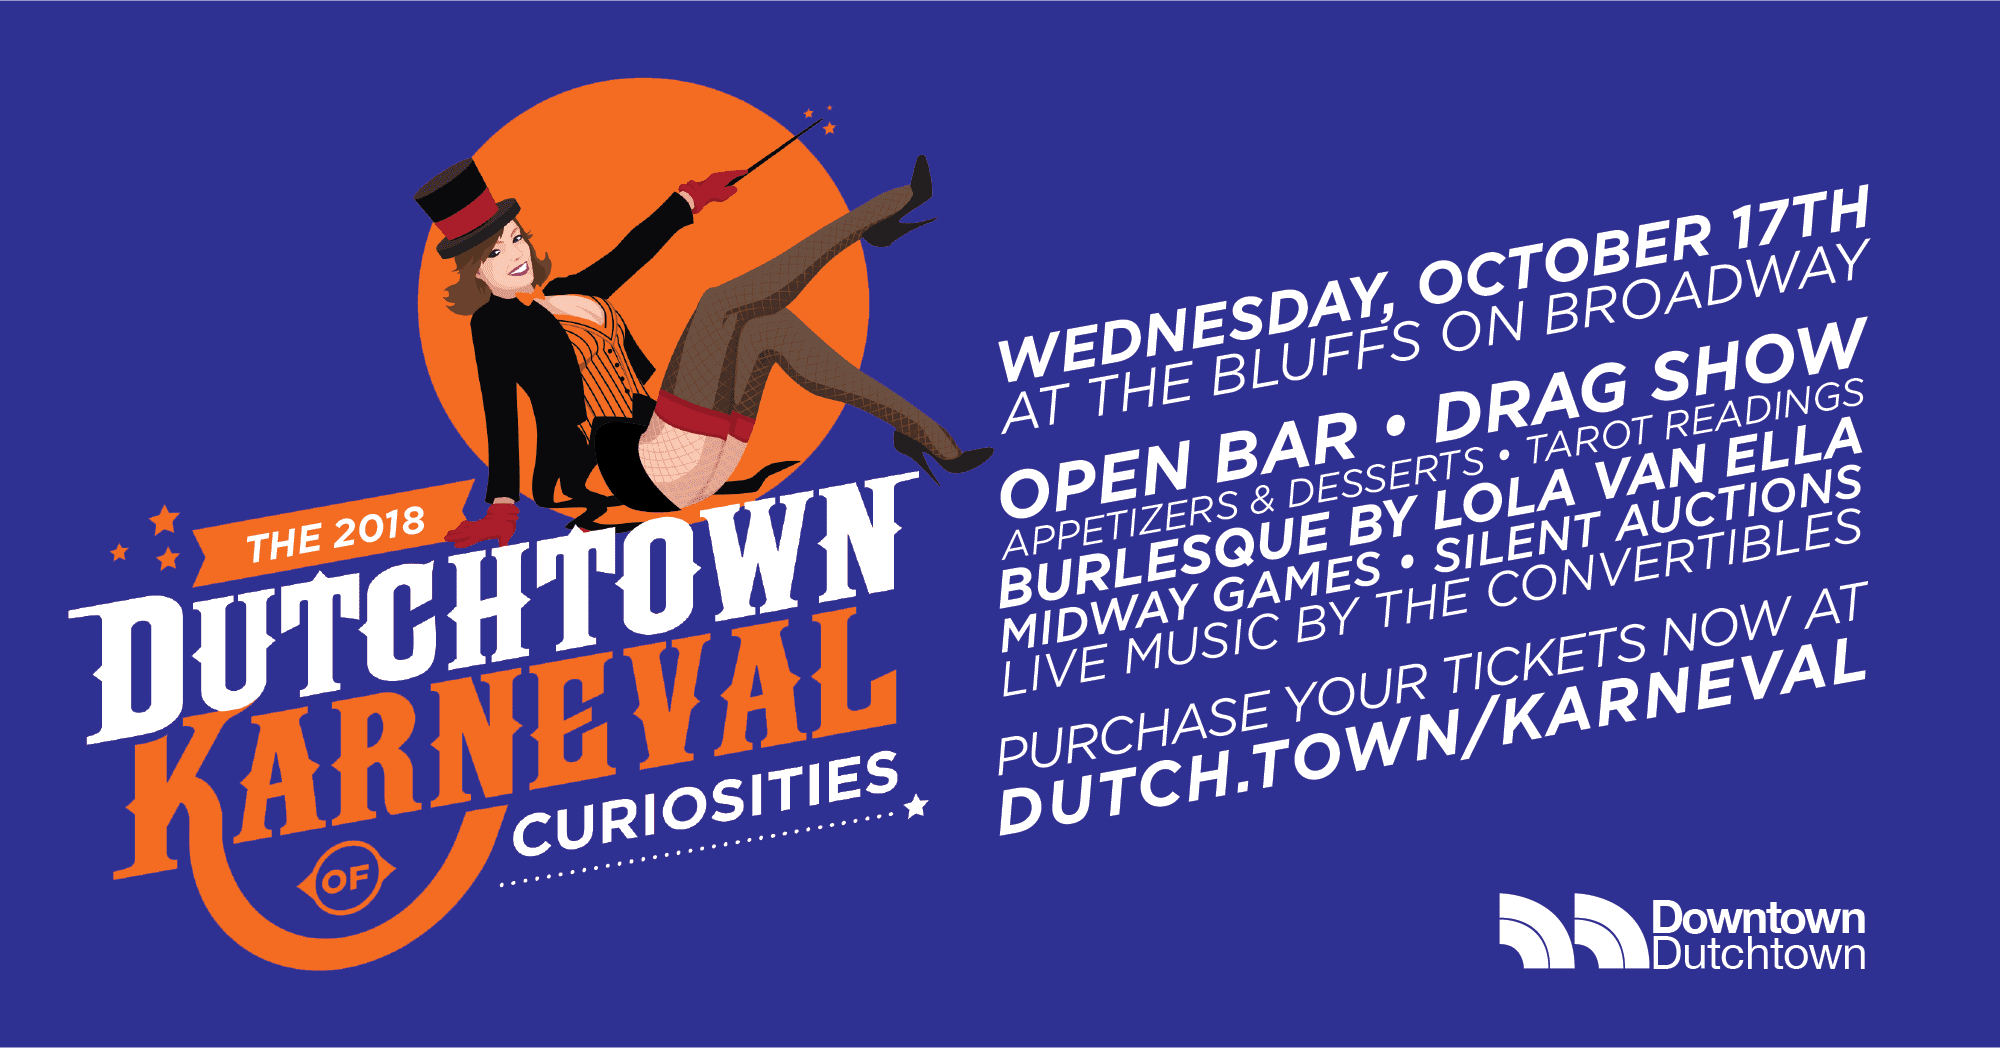 The D2018 Dutchtown Karneval of Curiositeis, Wednesday, October 17th at the Bluffs on Broadway.